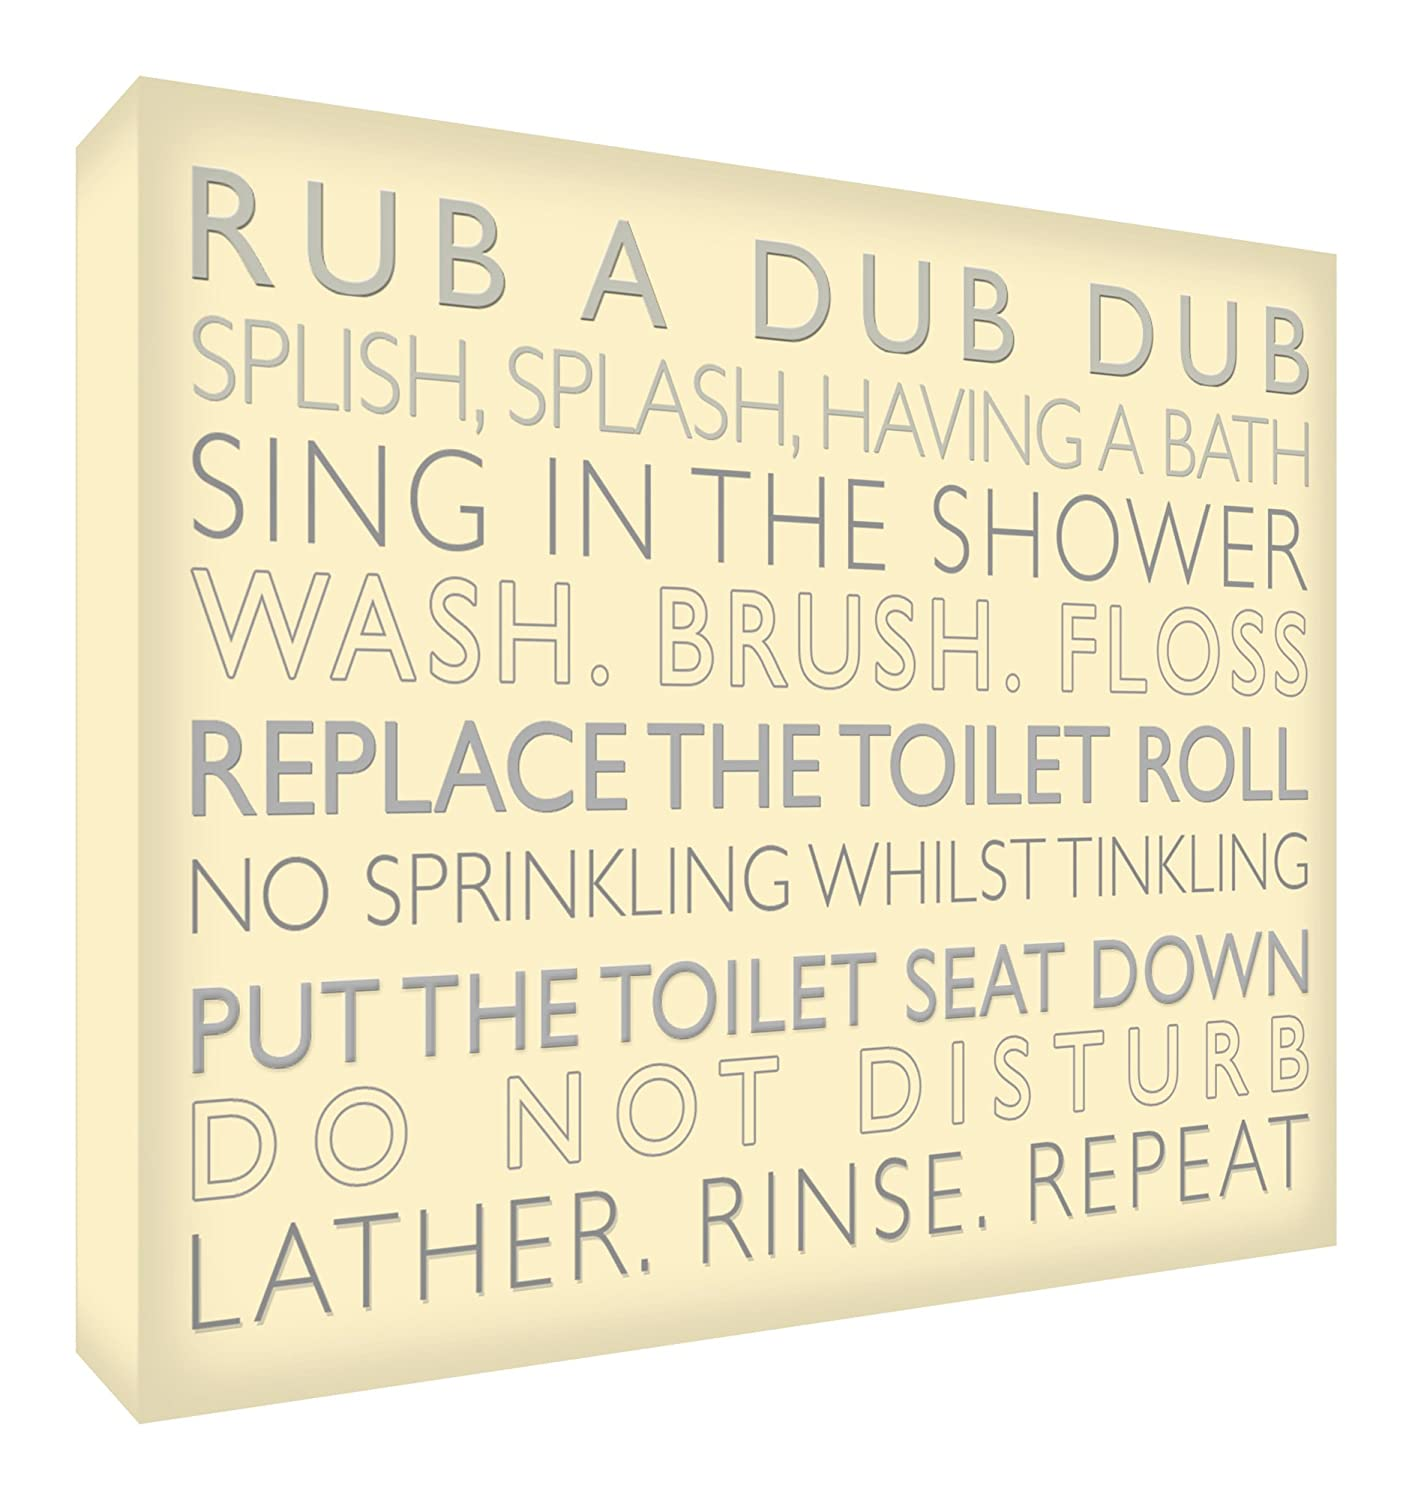 Feel Good Art White Wooden Block/ Ornament - Bathroom Rules - 6 x 4 - Teal CP-BATHRULES-64BLKWHT-07